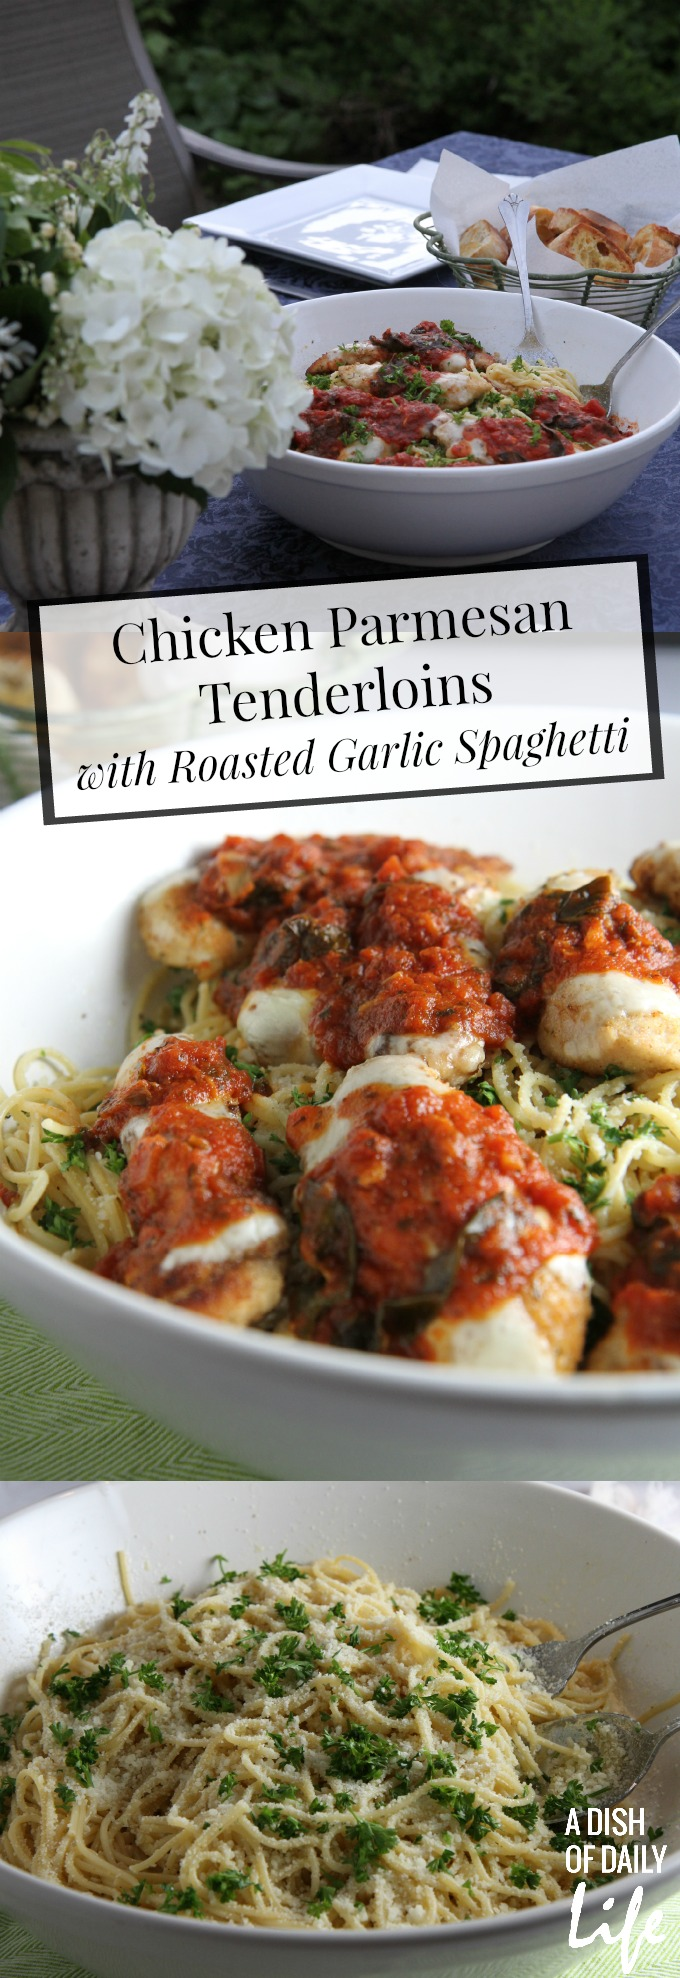 Chicken Parmesan Tenderloins with Roasted Garlic Spaghetti, an easy and delicious family friendly meal!